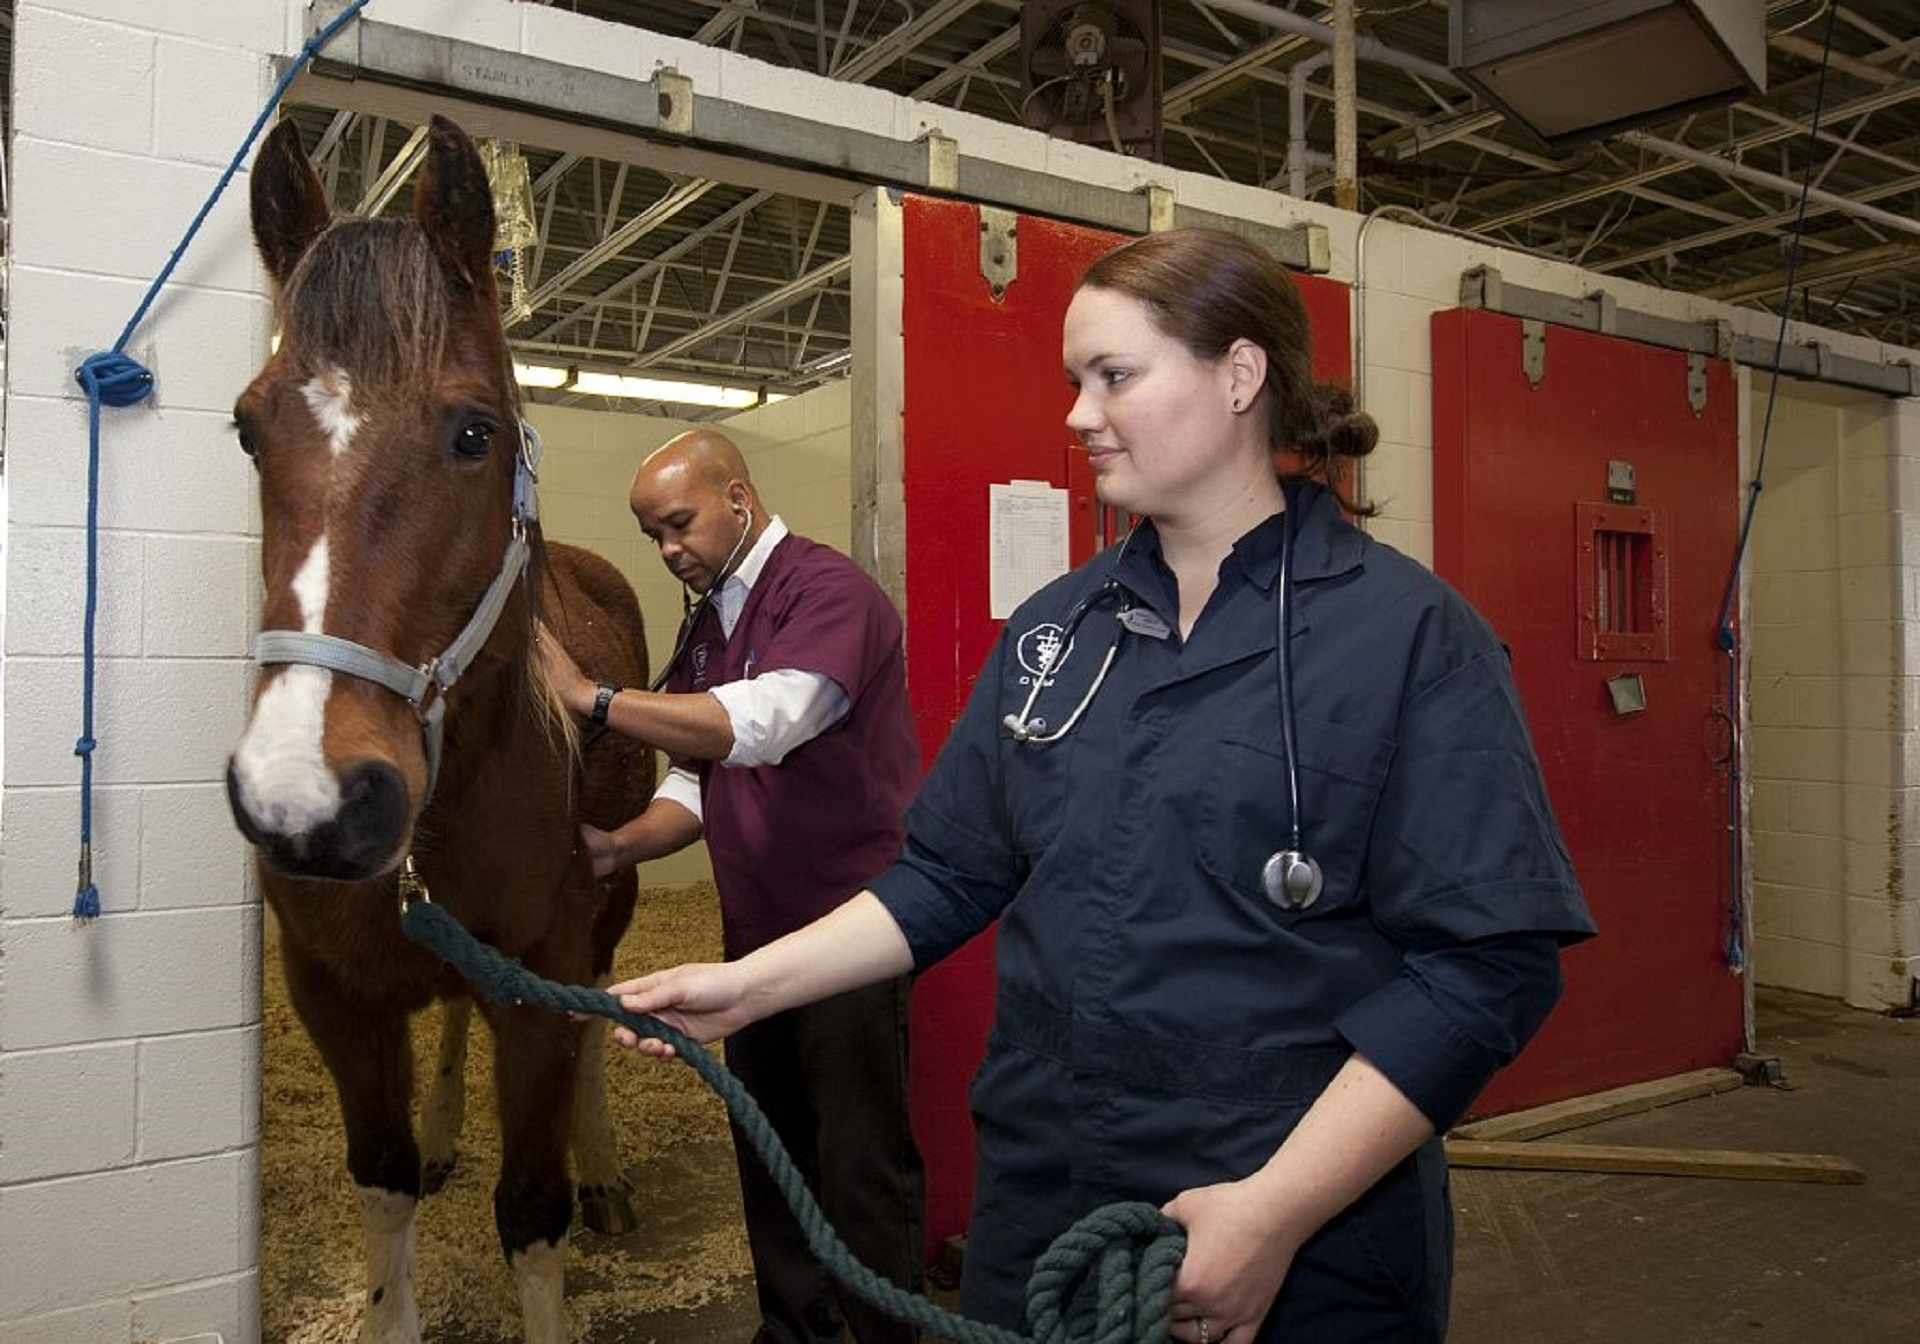 Veterinarian Doctor, Human, Nature, Stable, Horse, HQ Photo